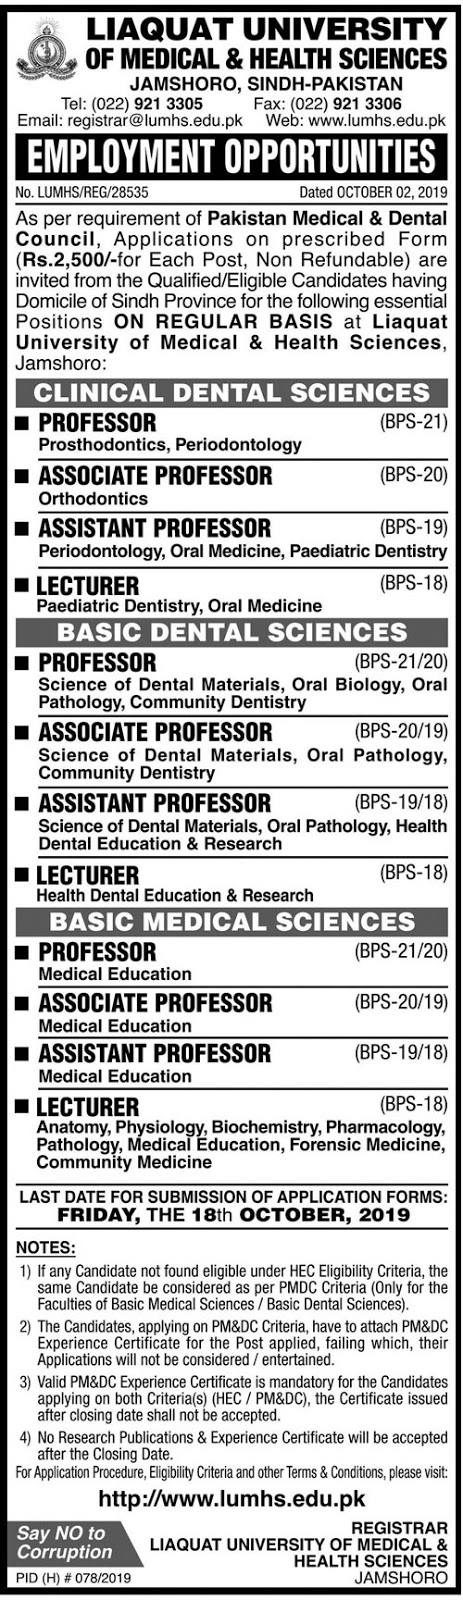 Liaquat University of Medical & Health Sciences Jobs 2019 for Lecturers